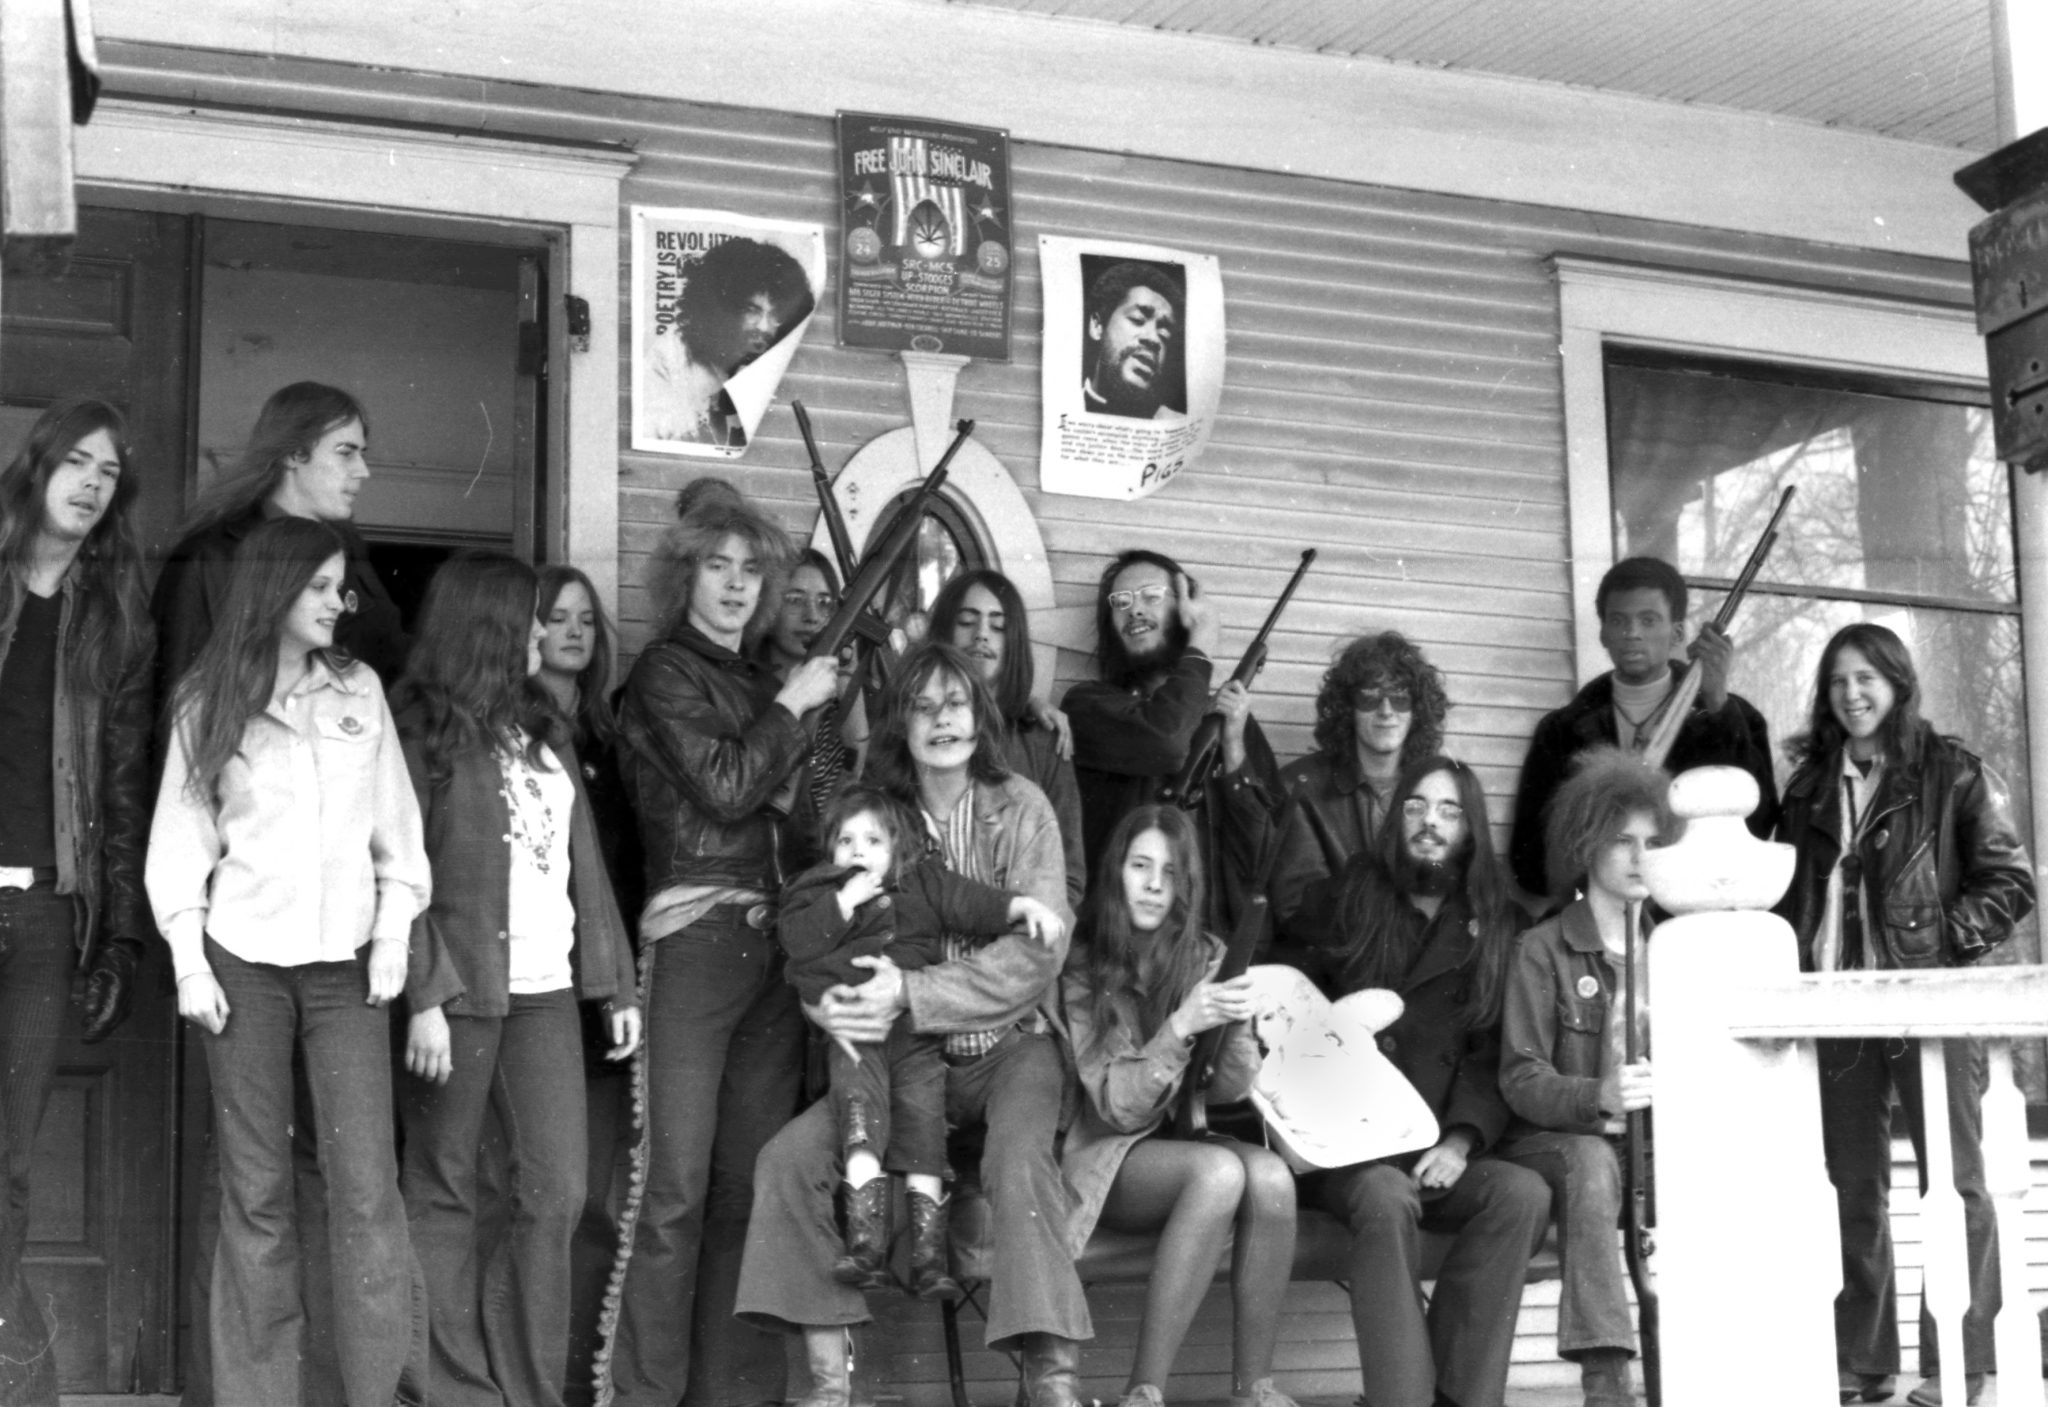 MEMBERS OF THE WHITE PANTHER PARTY IN DETROIT. PHOTO FROM MOCAD / SHOT BY LENI SINCLAIR